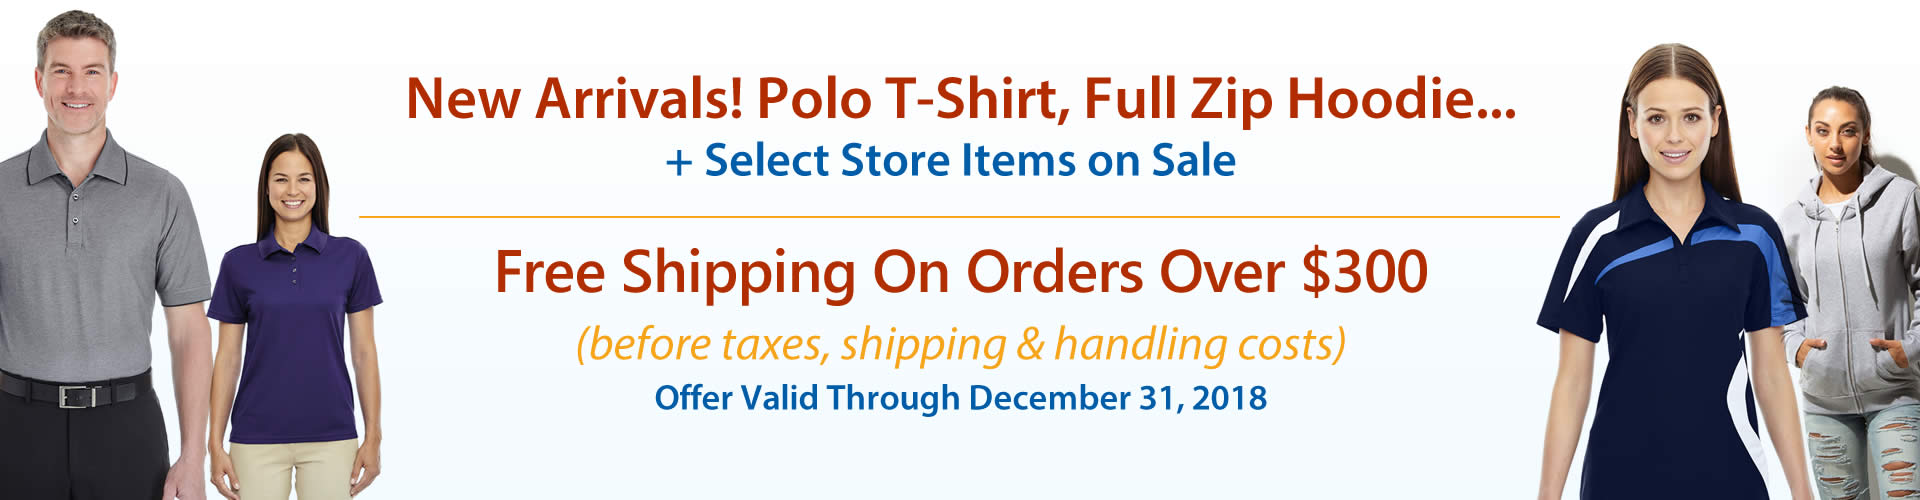 Rotary Club Products Free Shipping